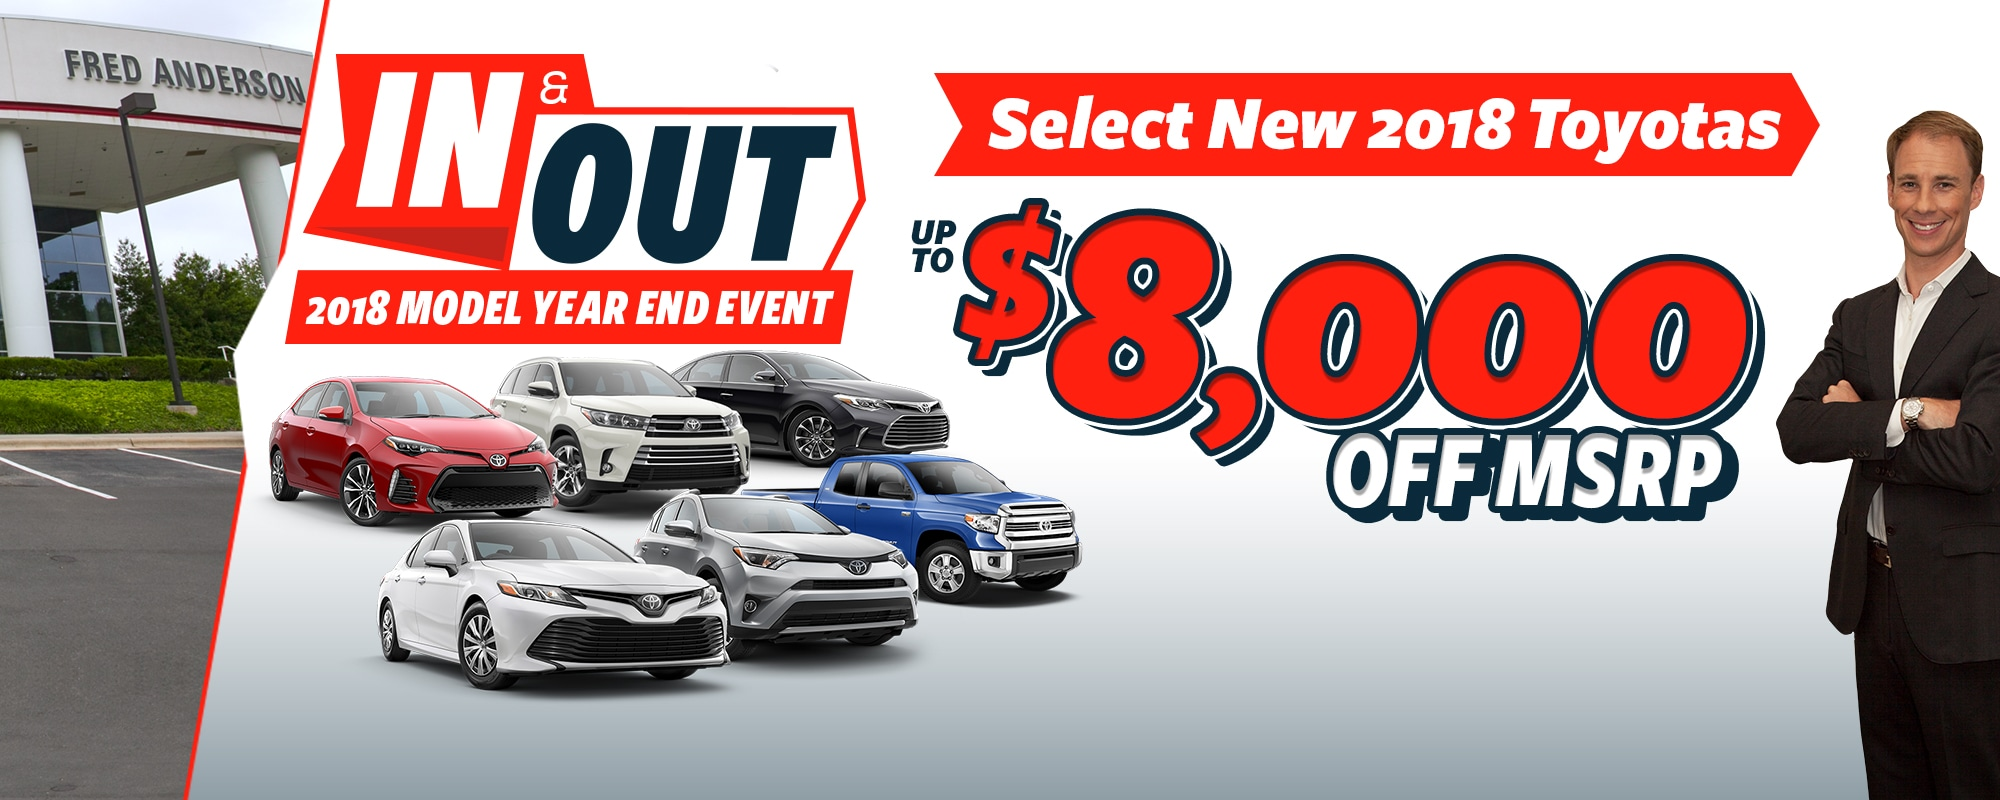 Select New 2018 Toyotas